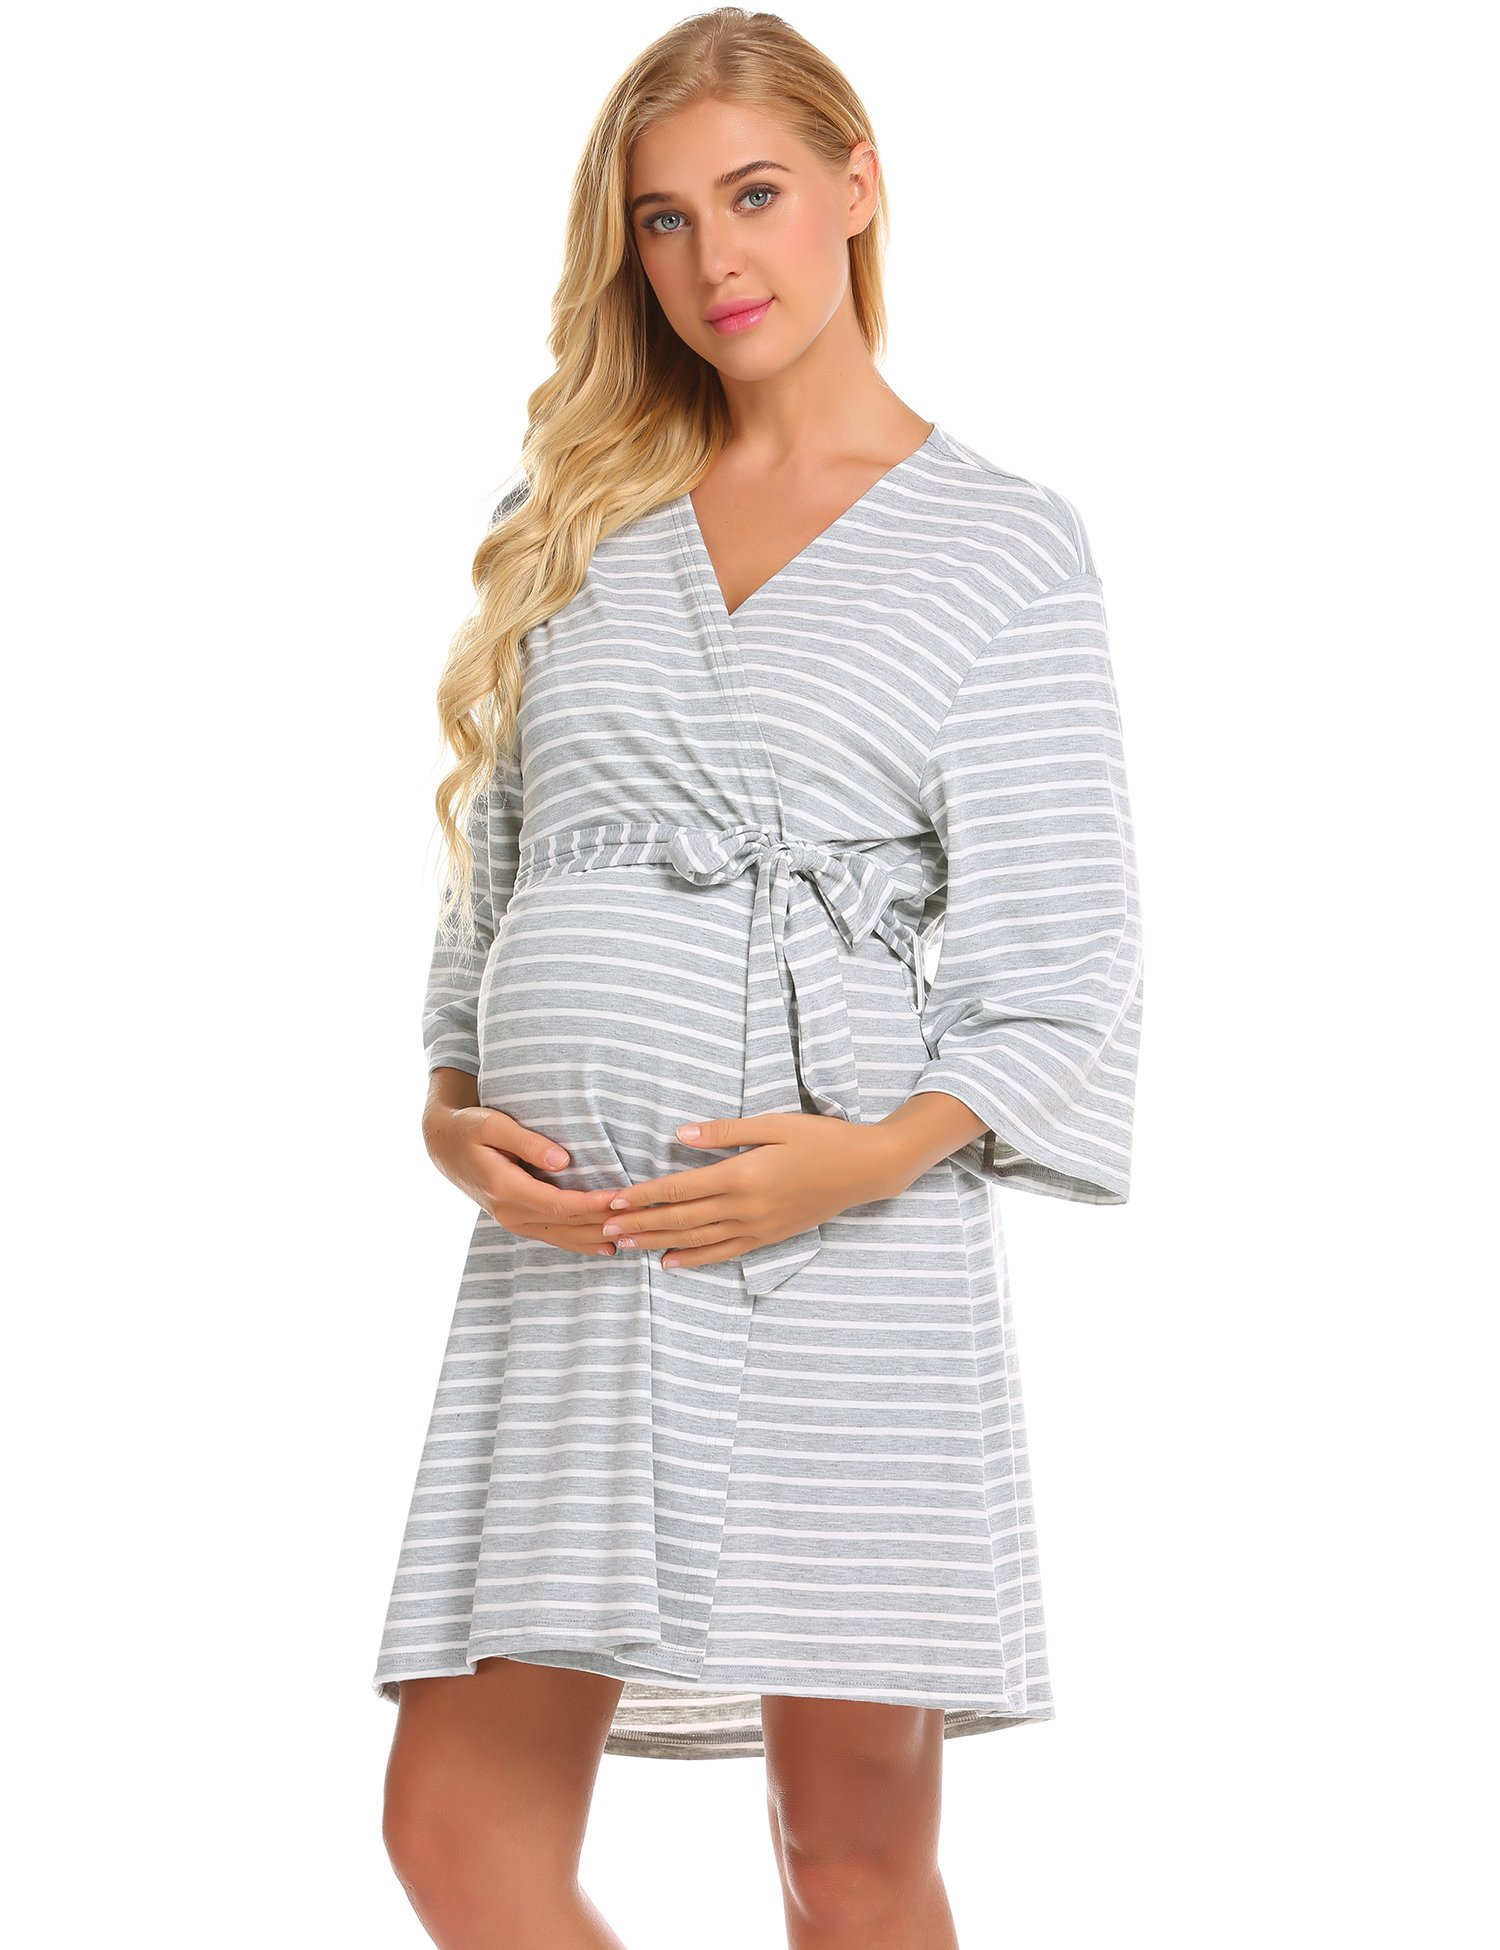 Ekouaer Womens Maternity Pregnancy Labor Robe Delivery Nursing Nightgowns Hospital Breastfeeding Gown ,Grey ,Large